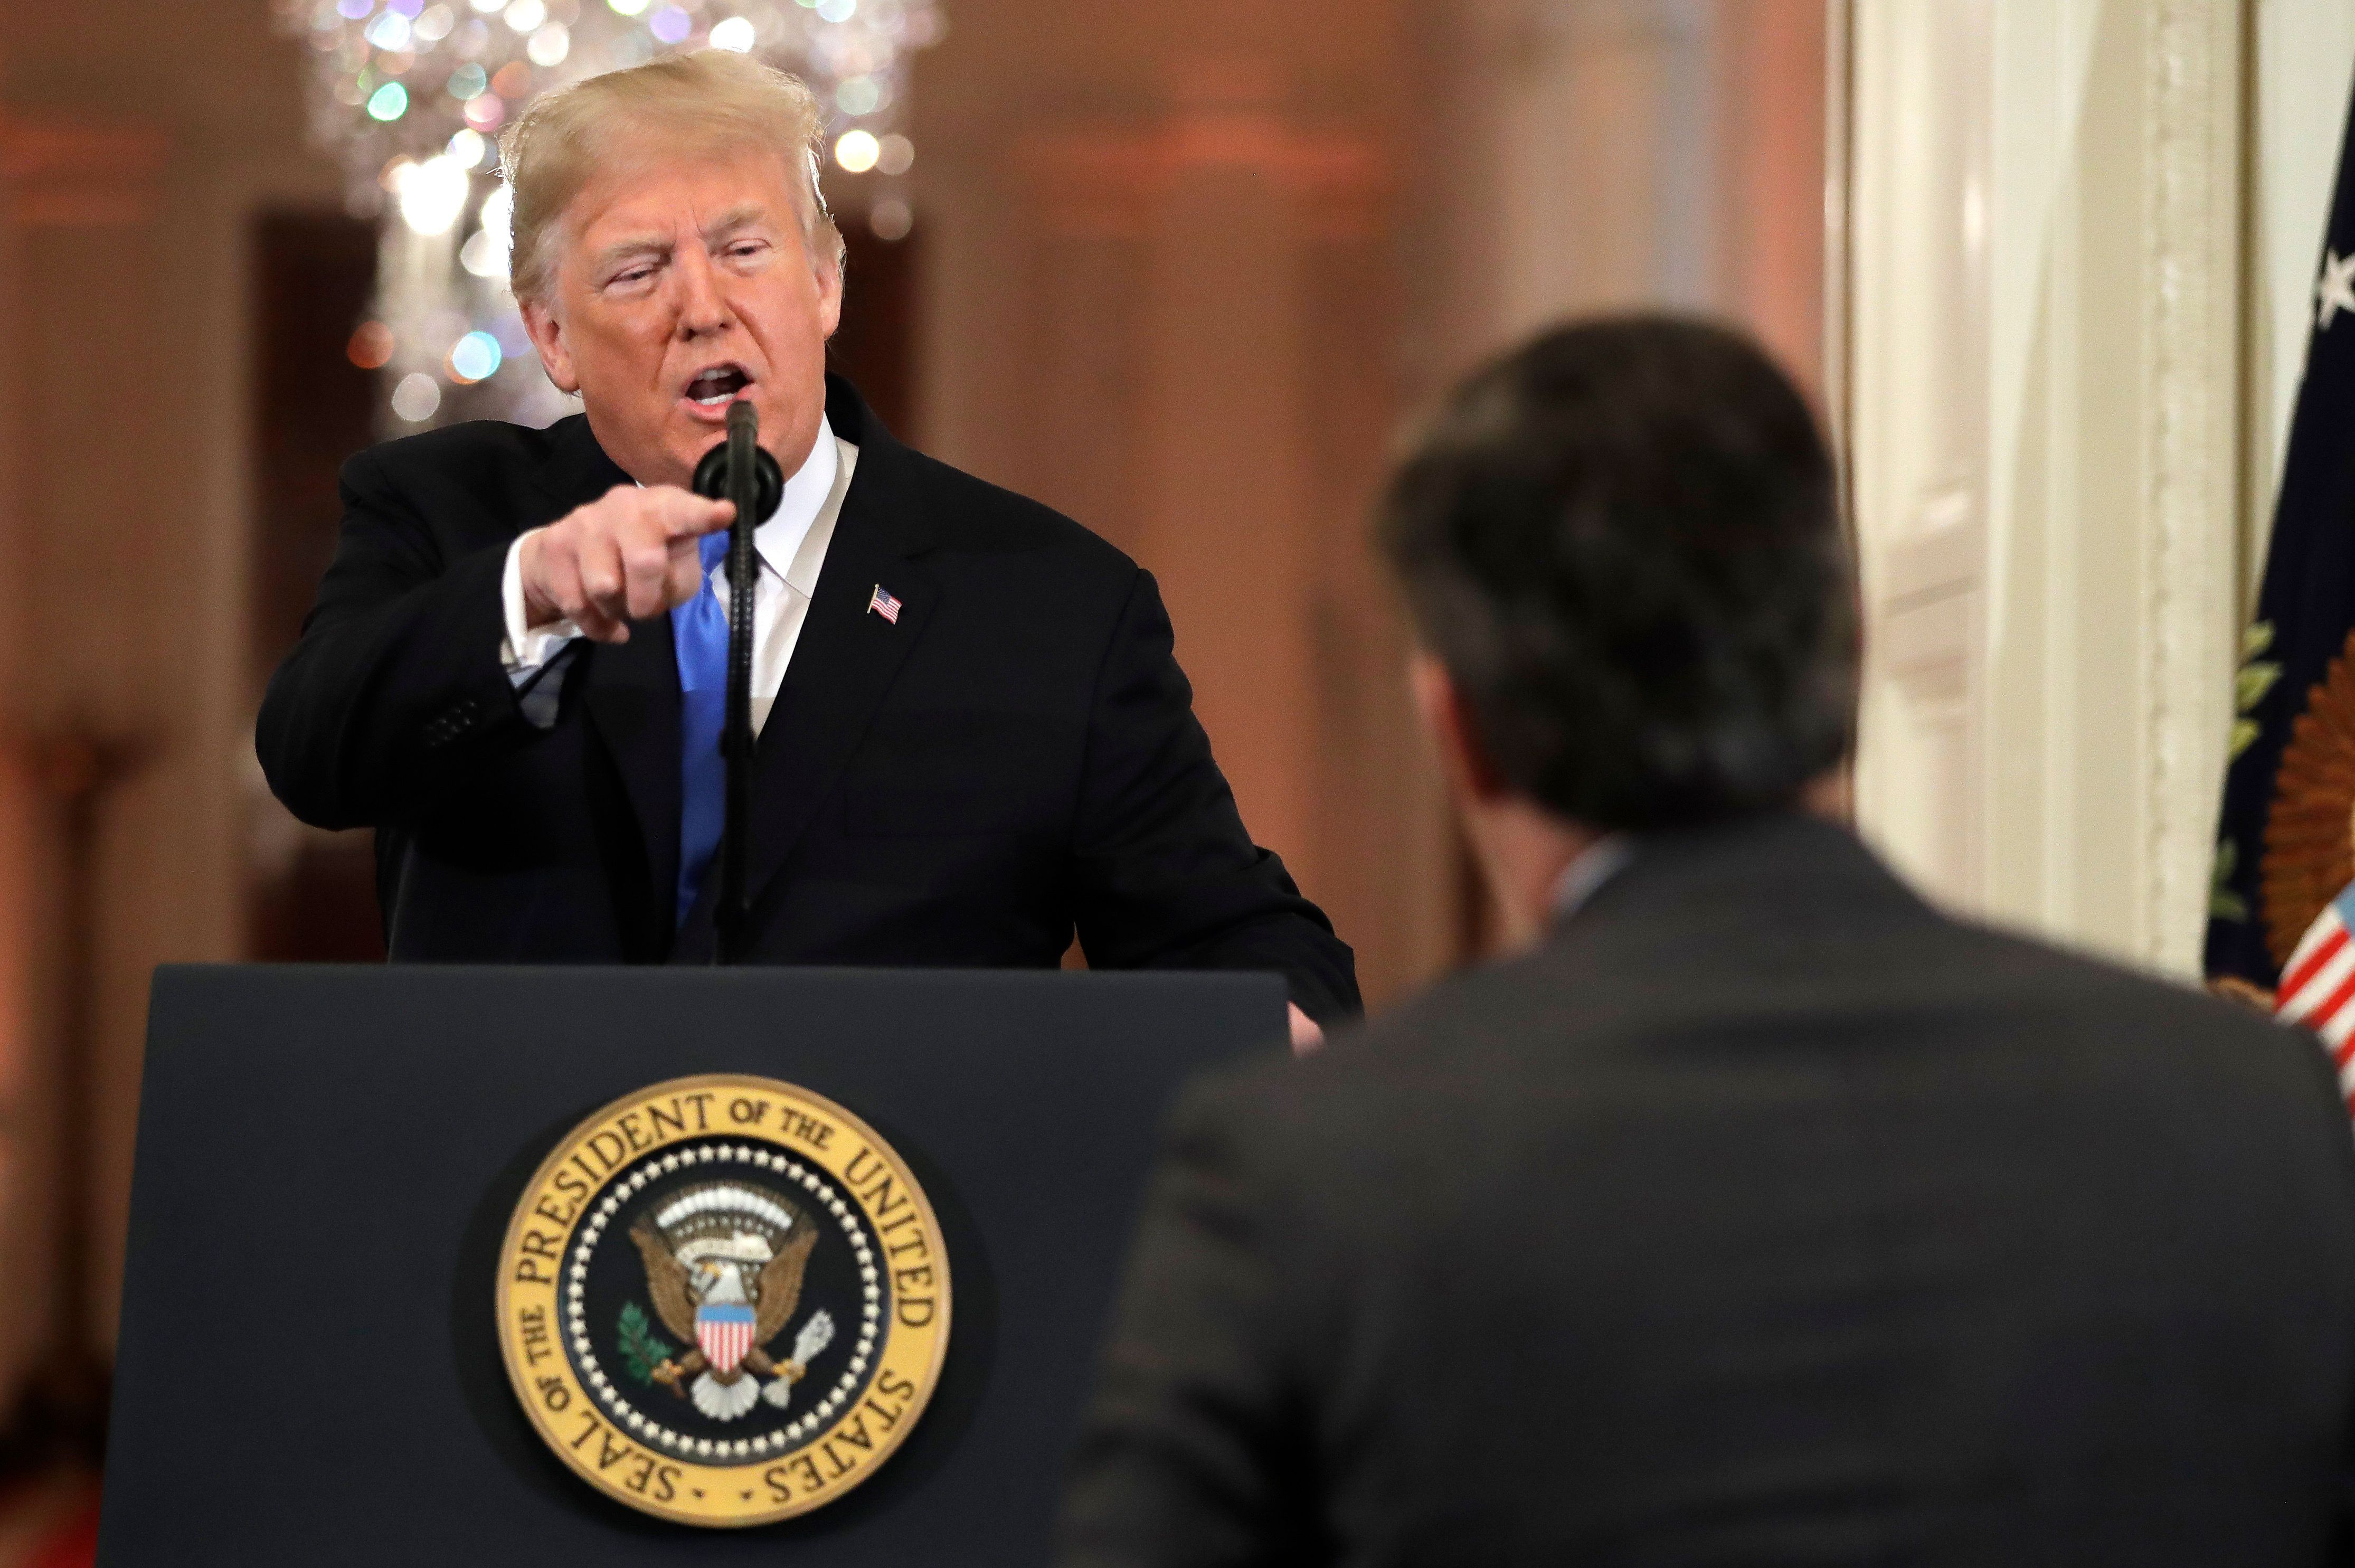 President Donald Trump points to CNN's Jim Acosta as he speaks during a news conference in the East Room of the White House, Wednesday, Nov. 7, 2018, in Washington. (AP Photo/Evan Vucci)